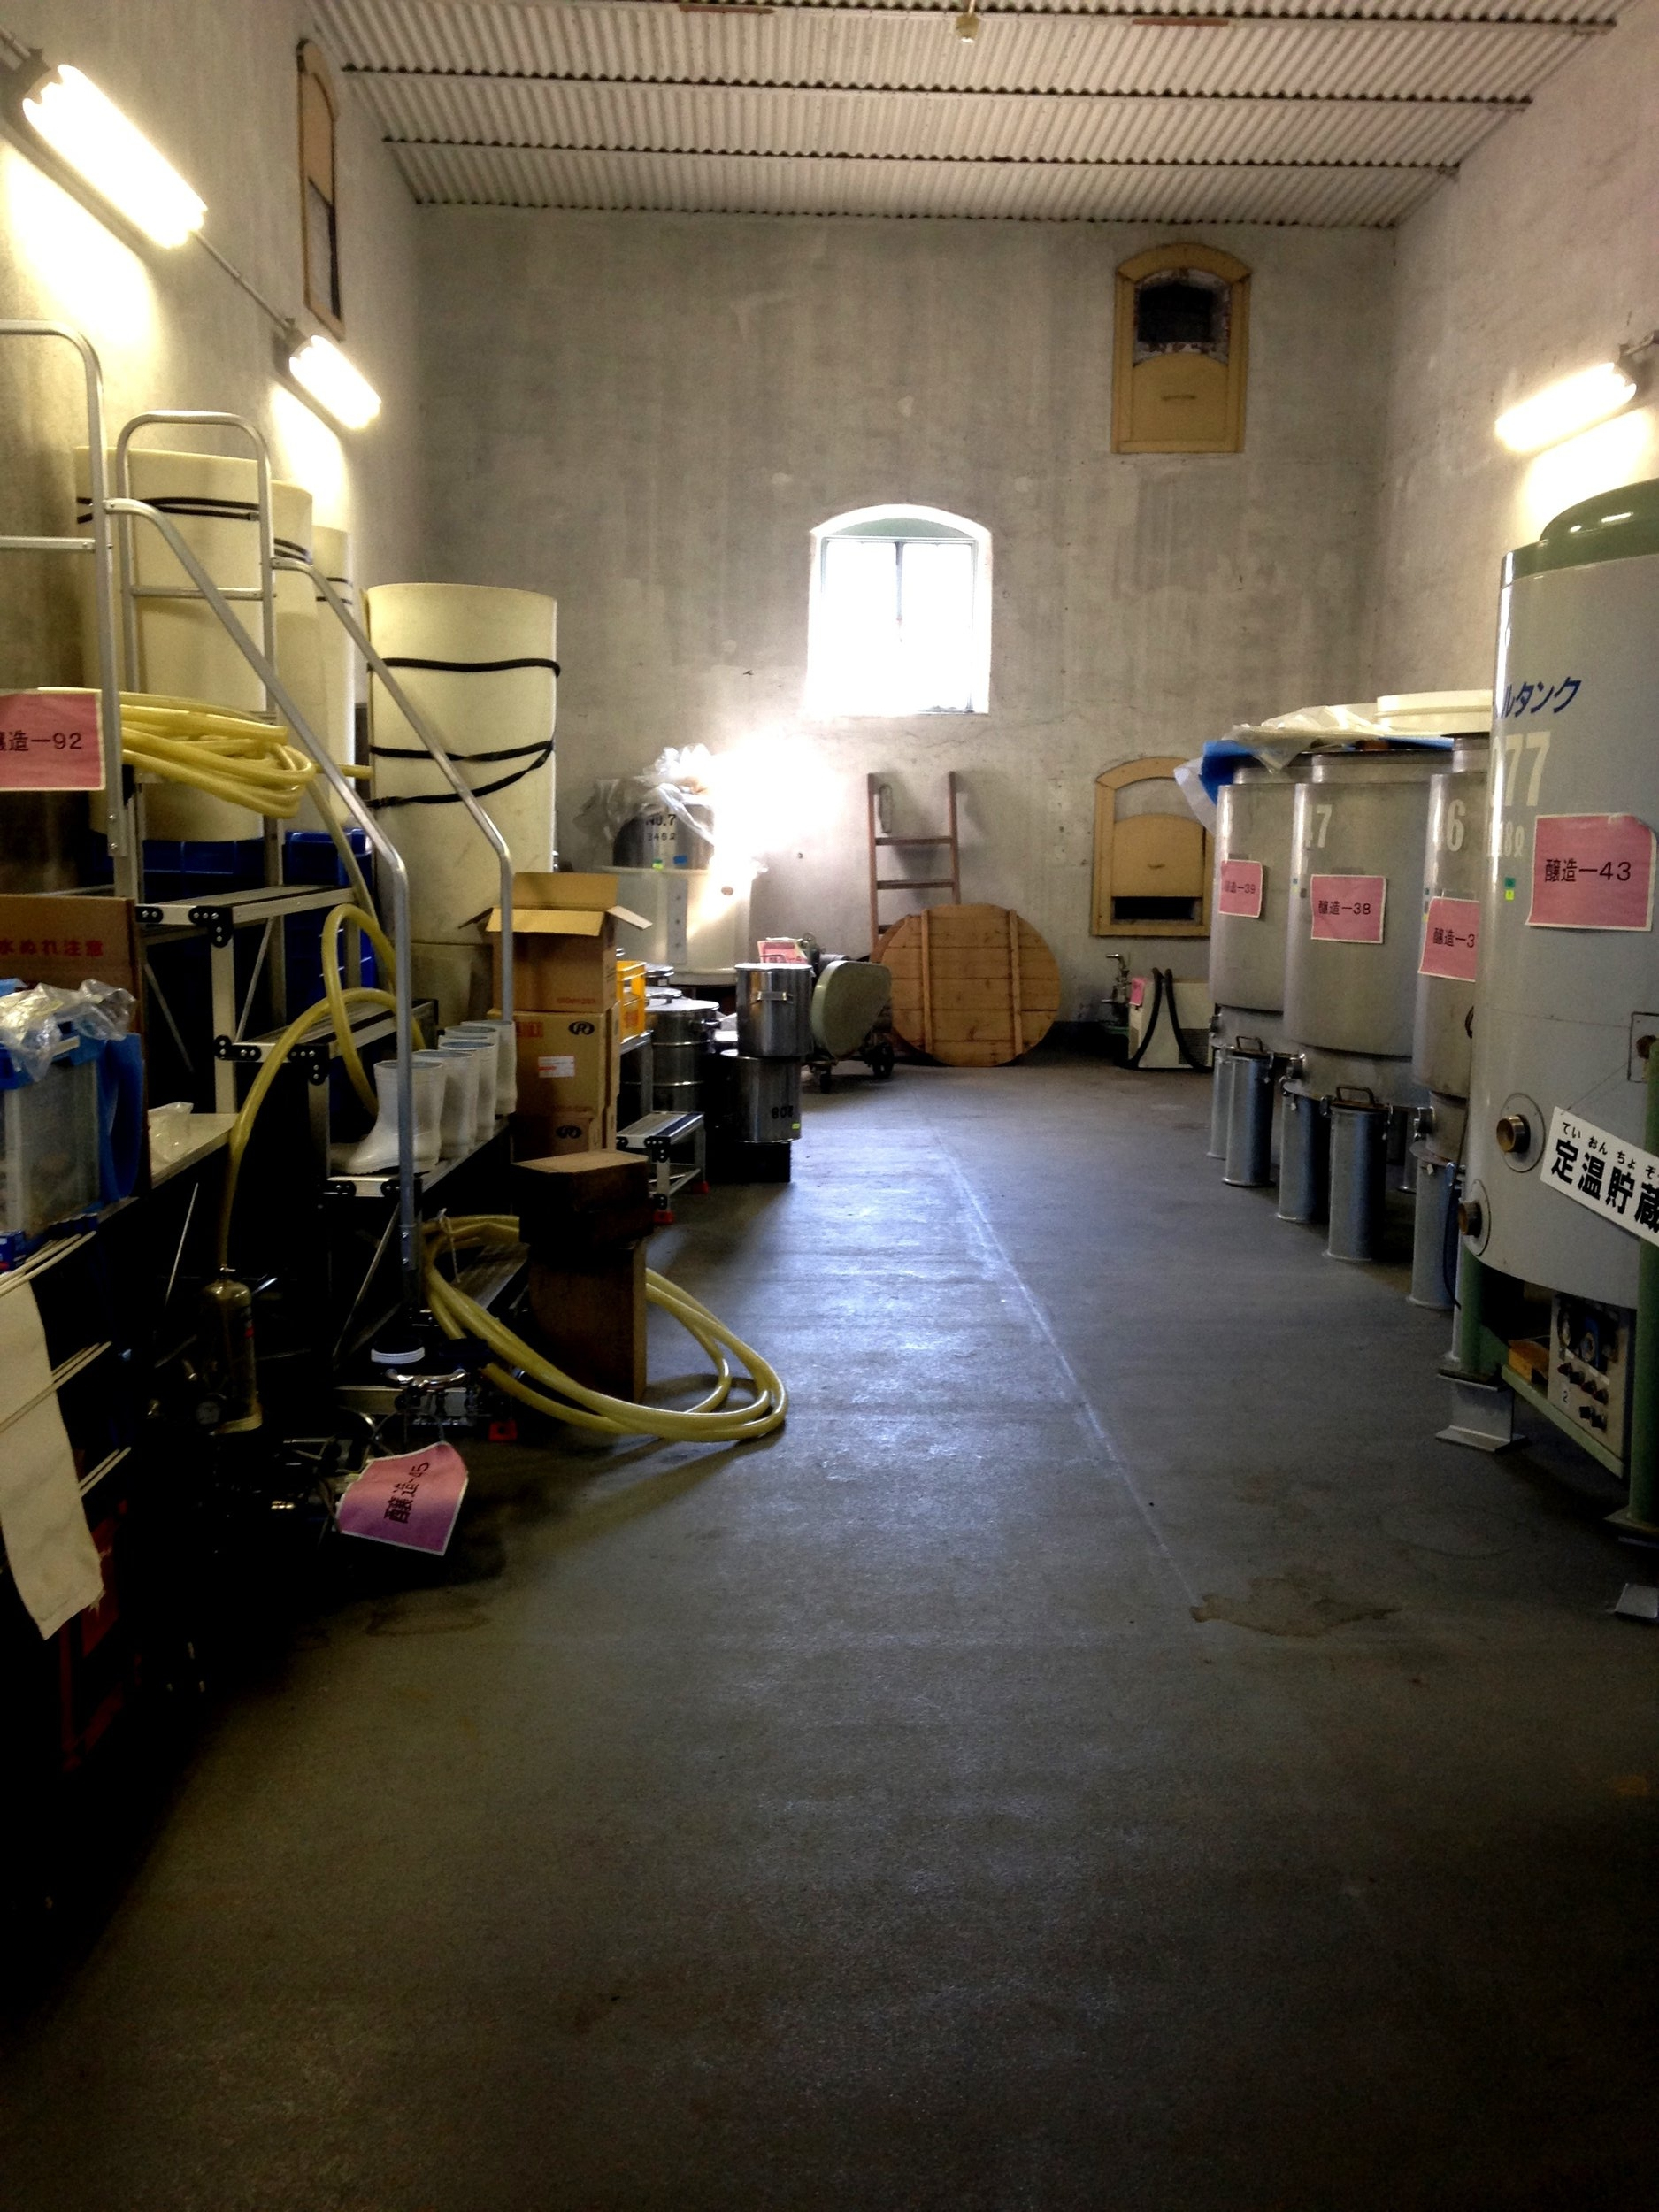 We snooped around the old sake brewery a little. No longer in production but still a lot of great equipment.